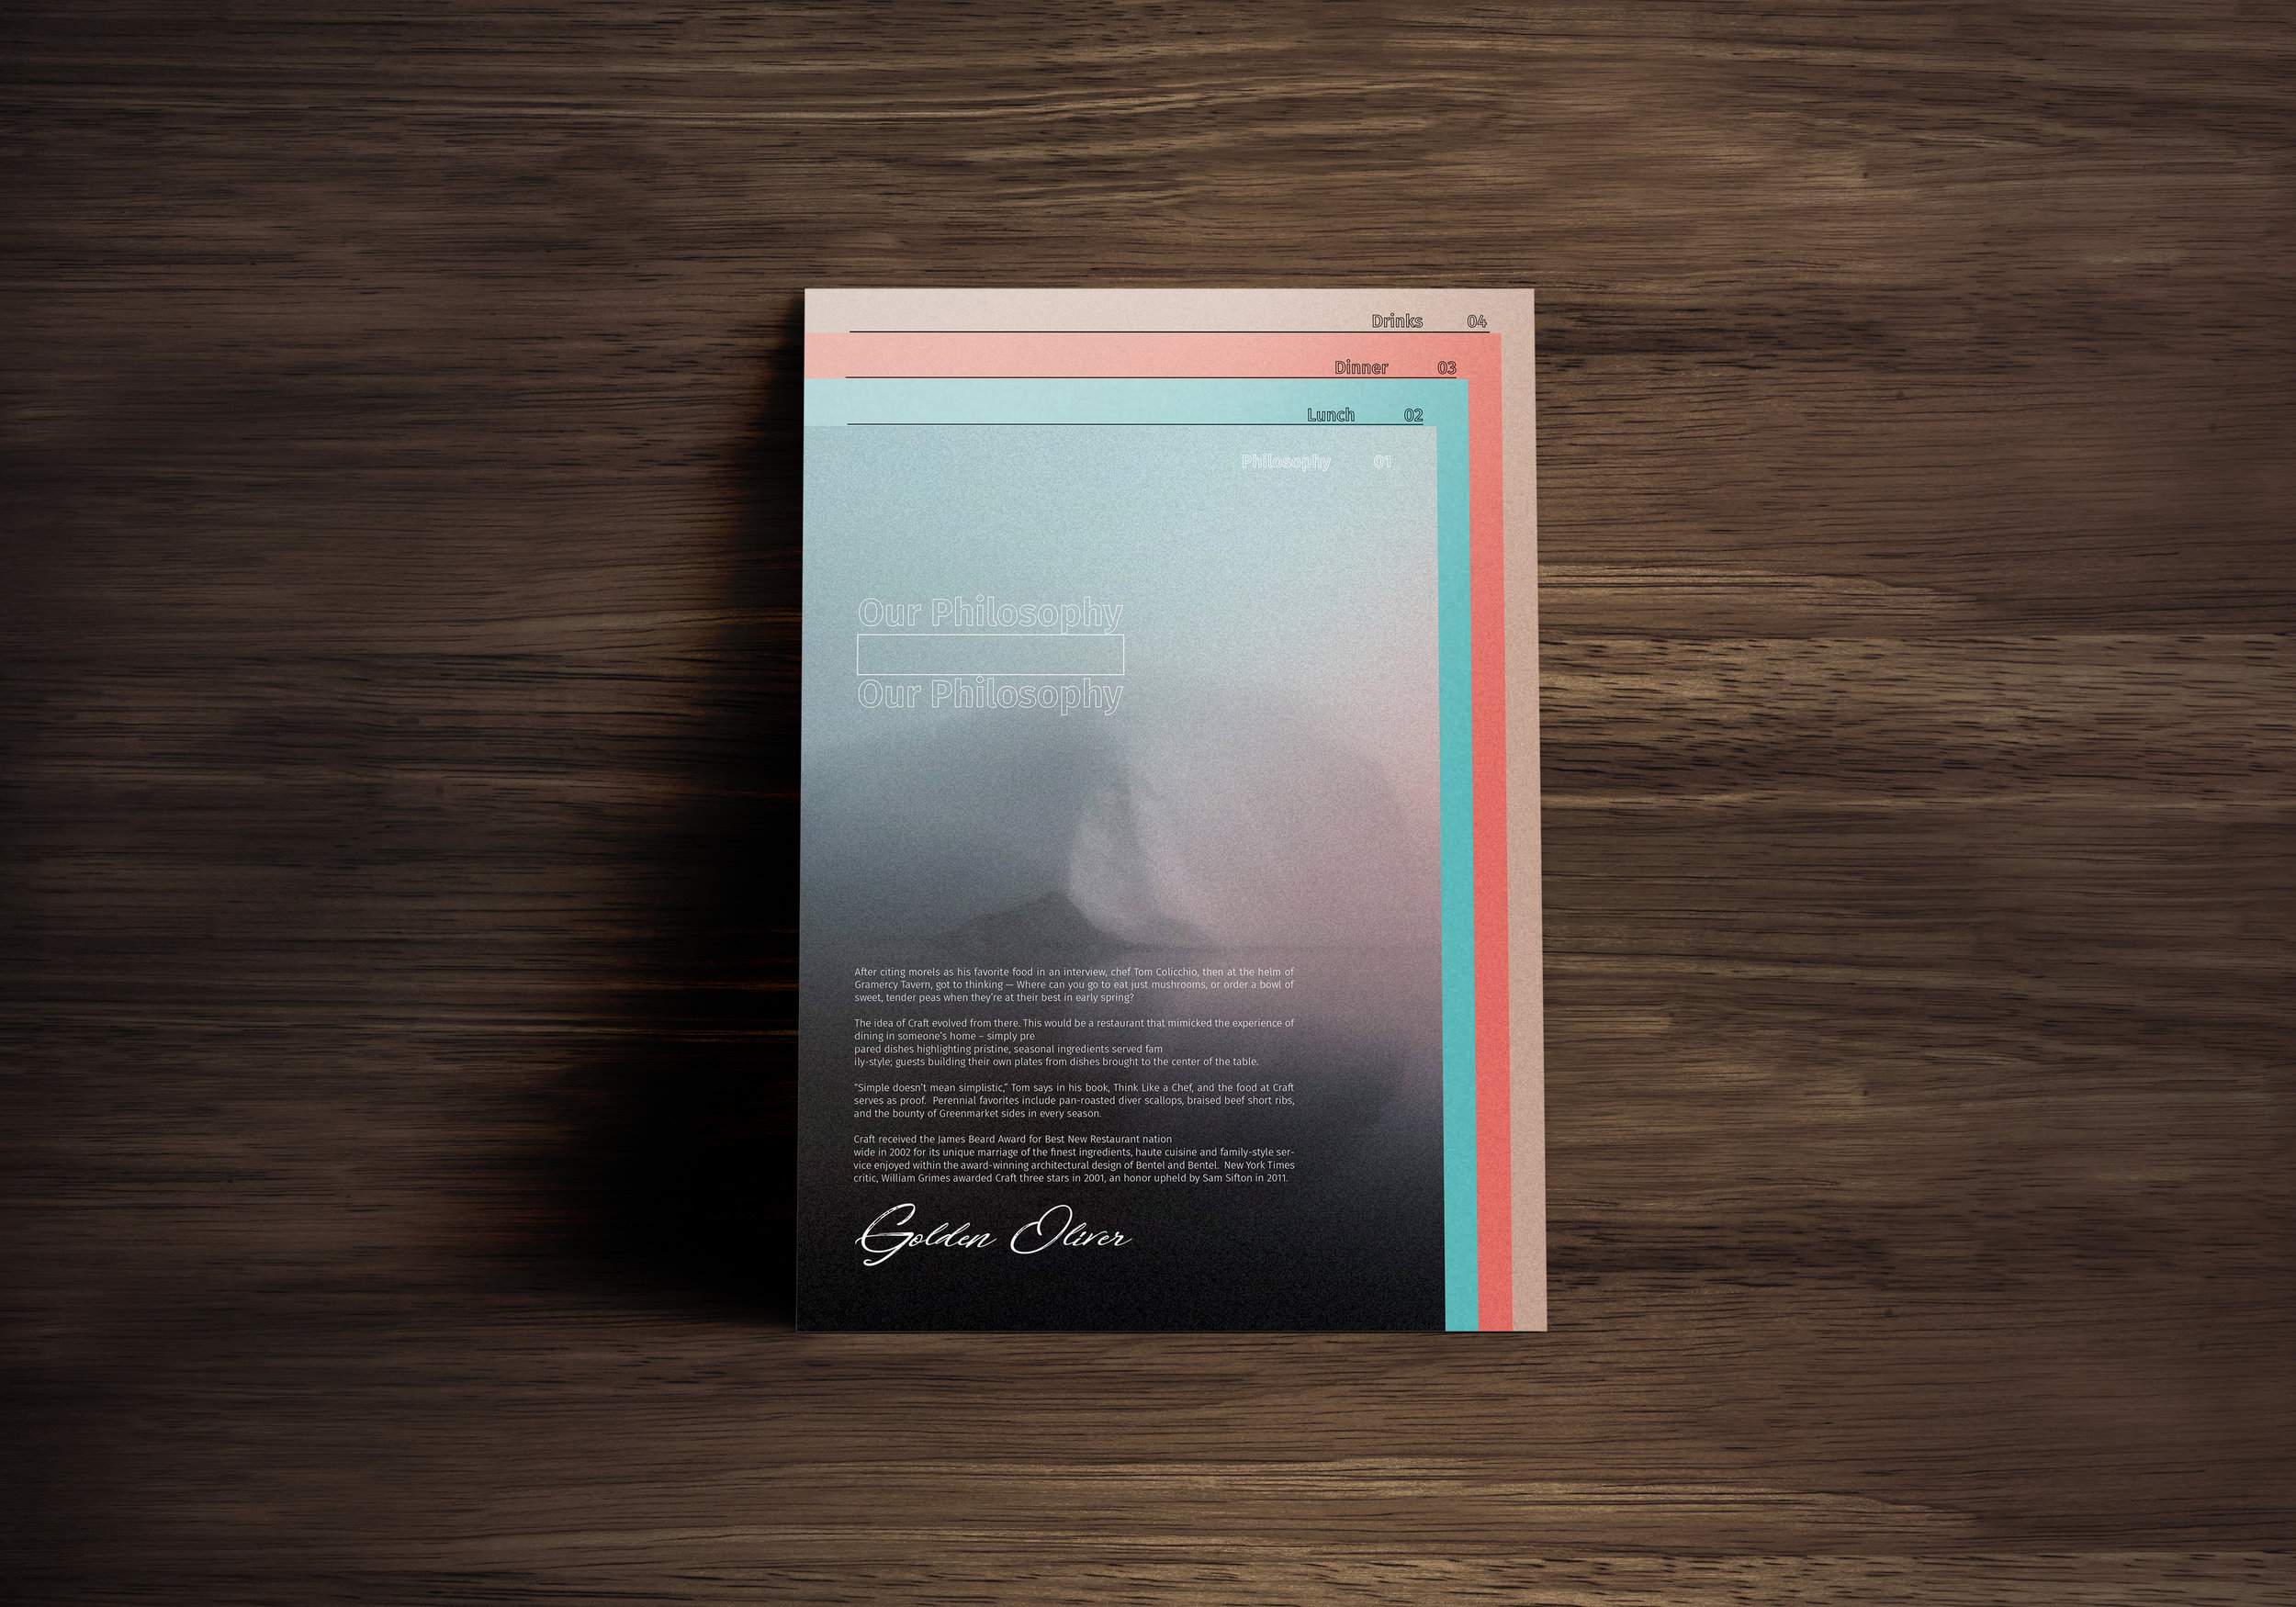 all philips hue invisible cities restaurant menu oracle music festival poster mellow out chocolate the sea magazine jetblue ads gamelynx weather app